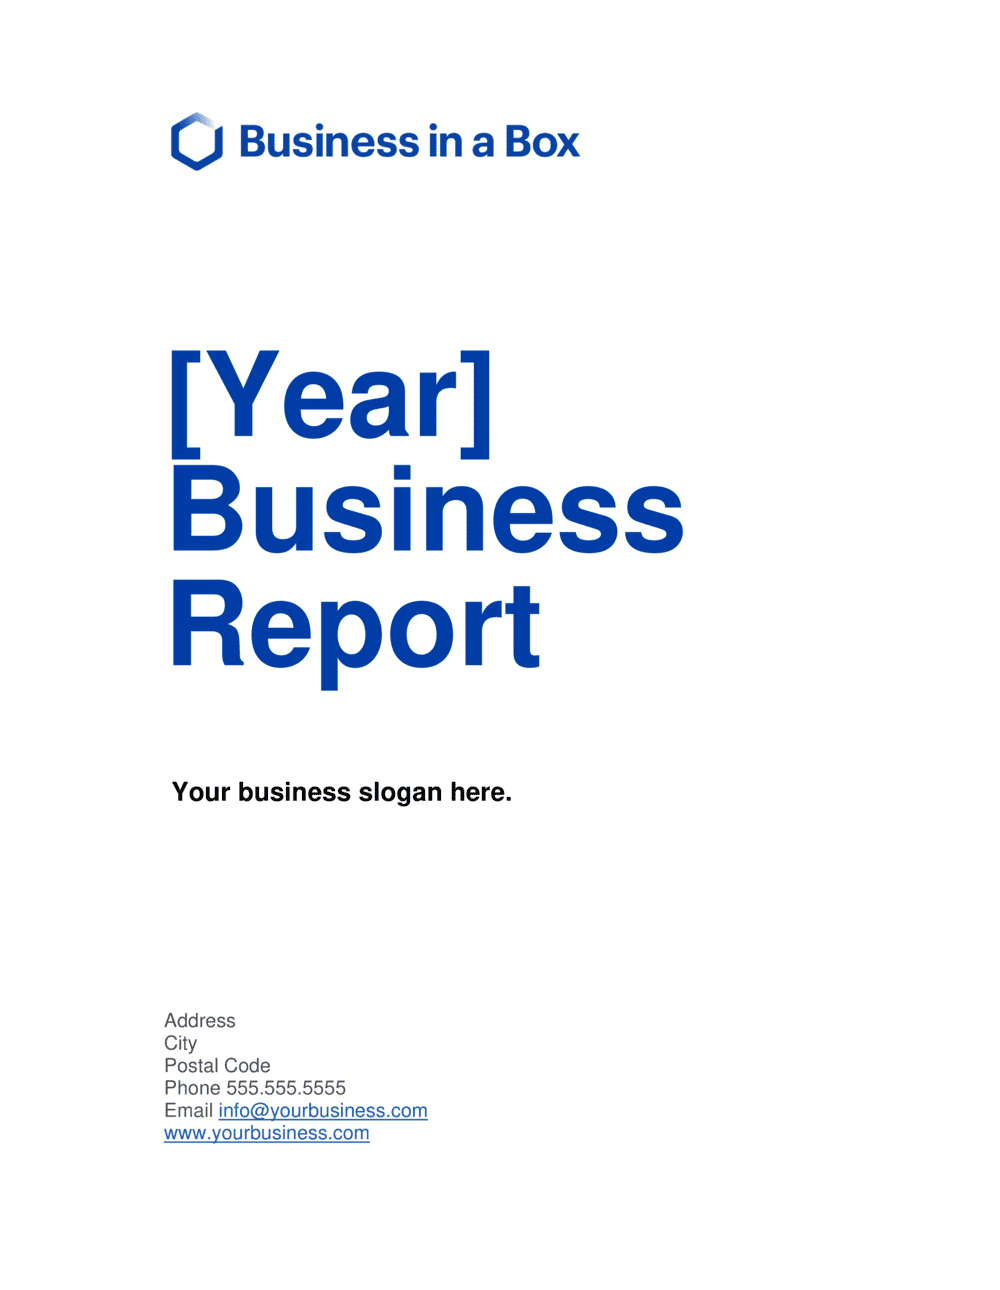 Business-in-a-Box's Business Report Template